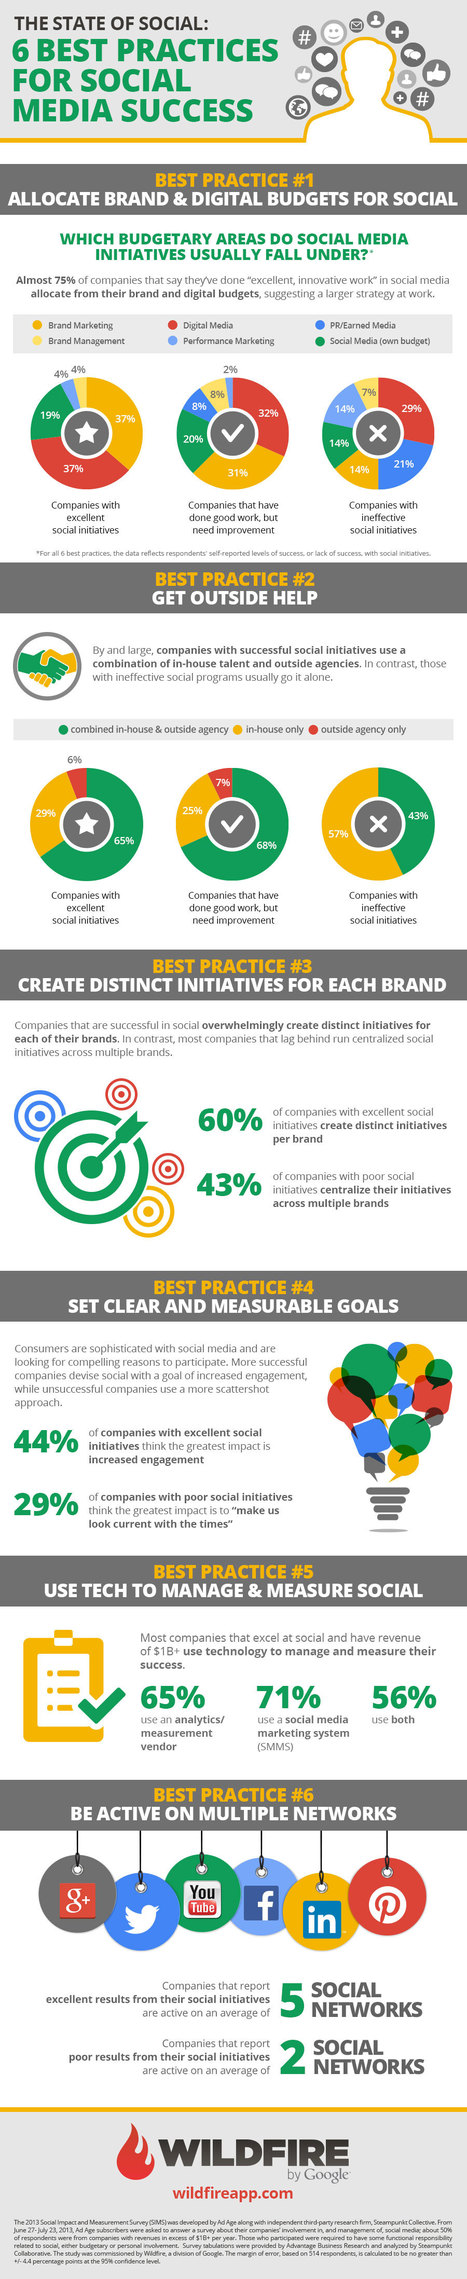 The State of Social: An Infographic of 6 Best Practices | AnimalConservation | Scoop.it